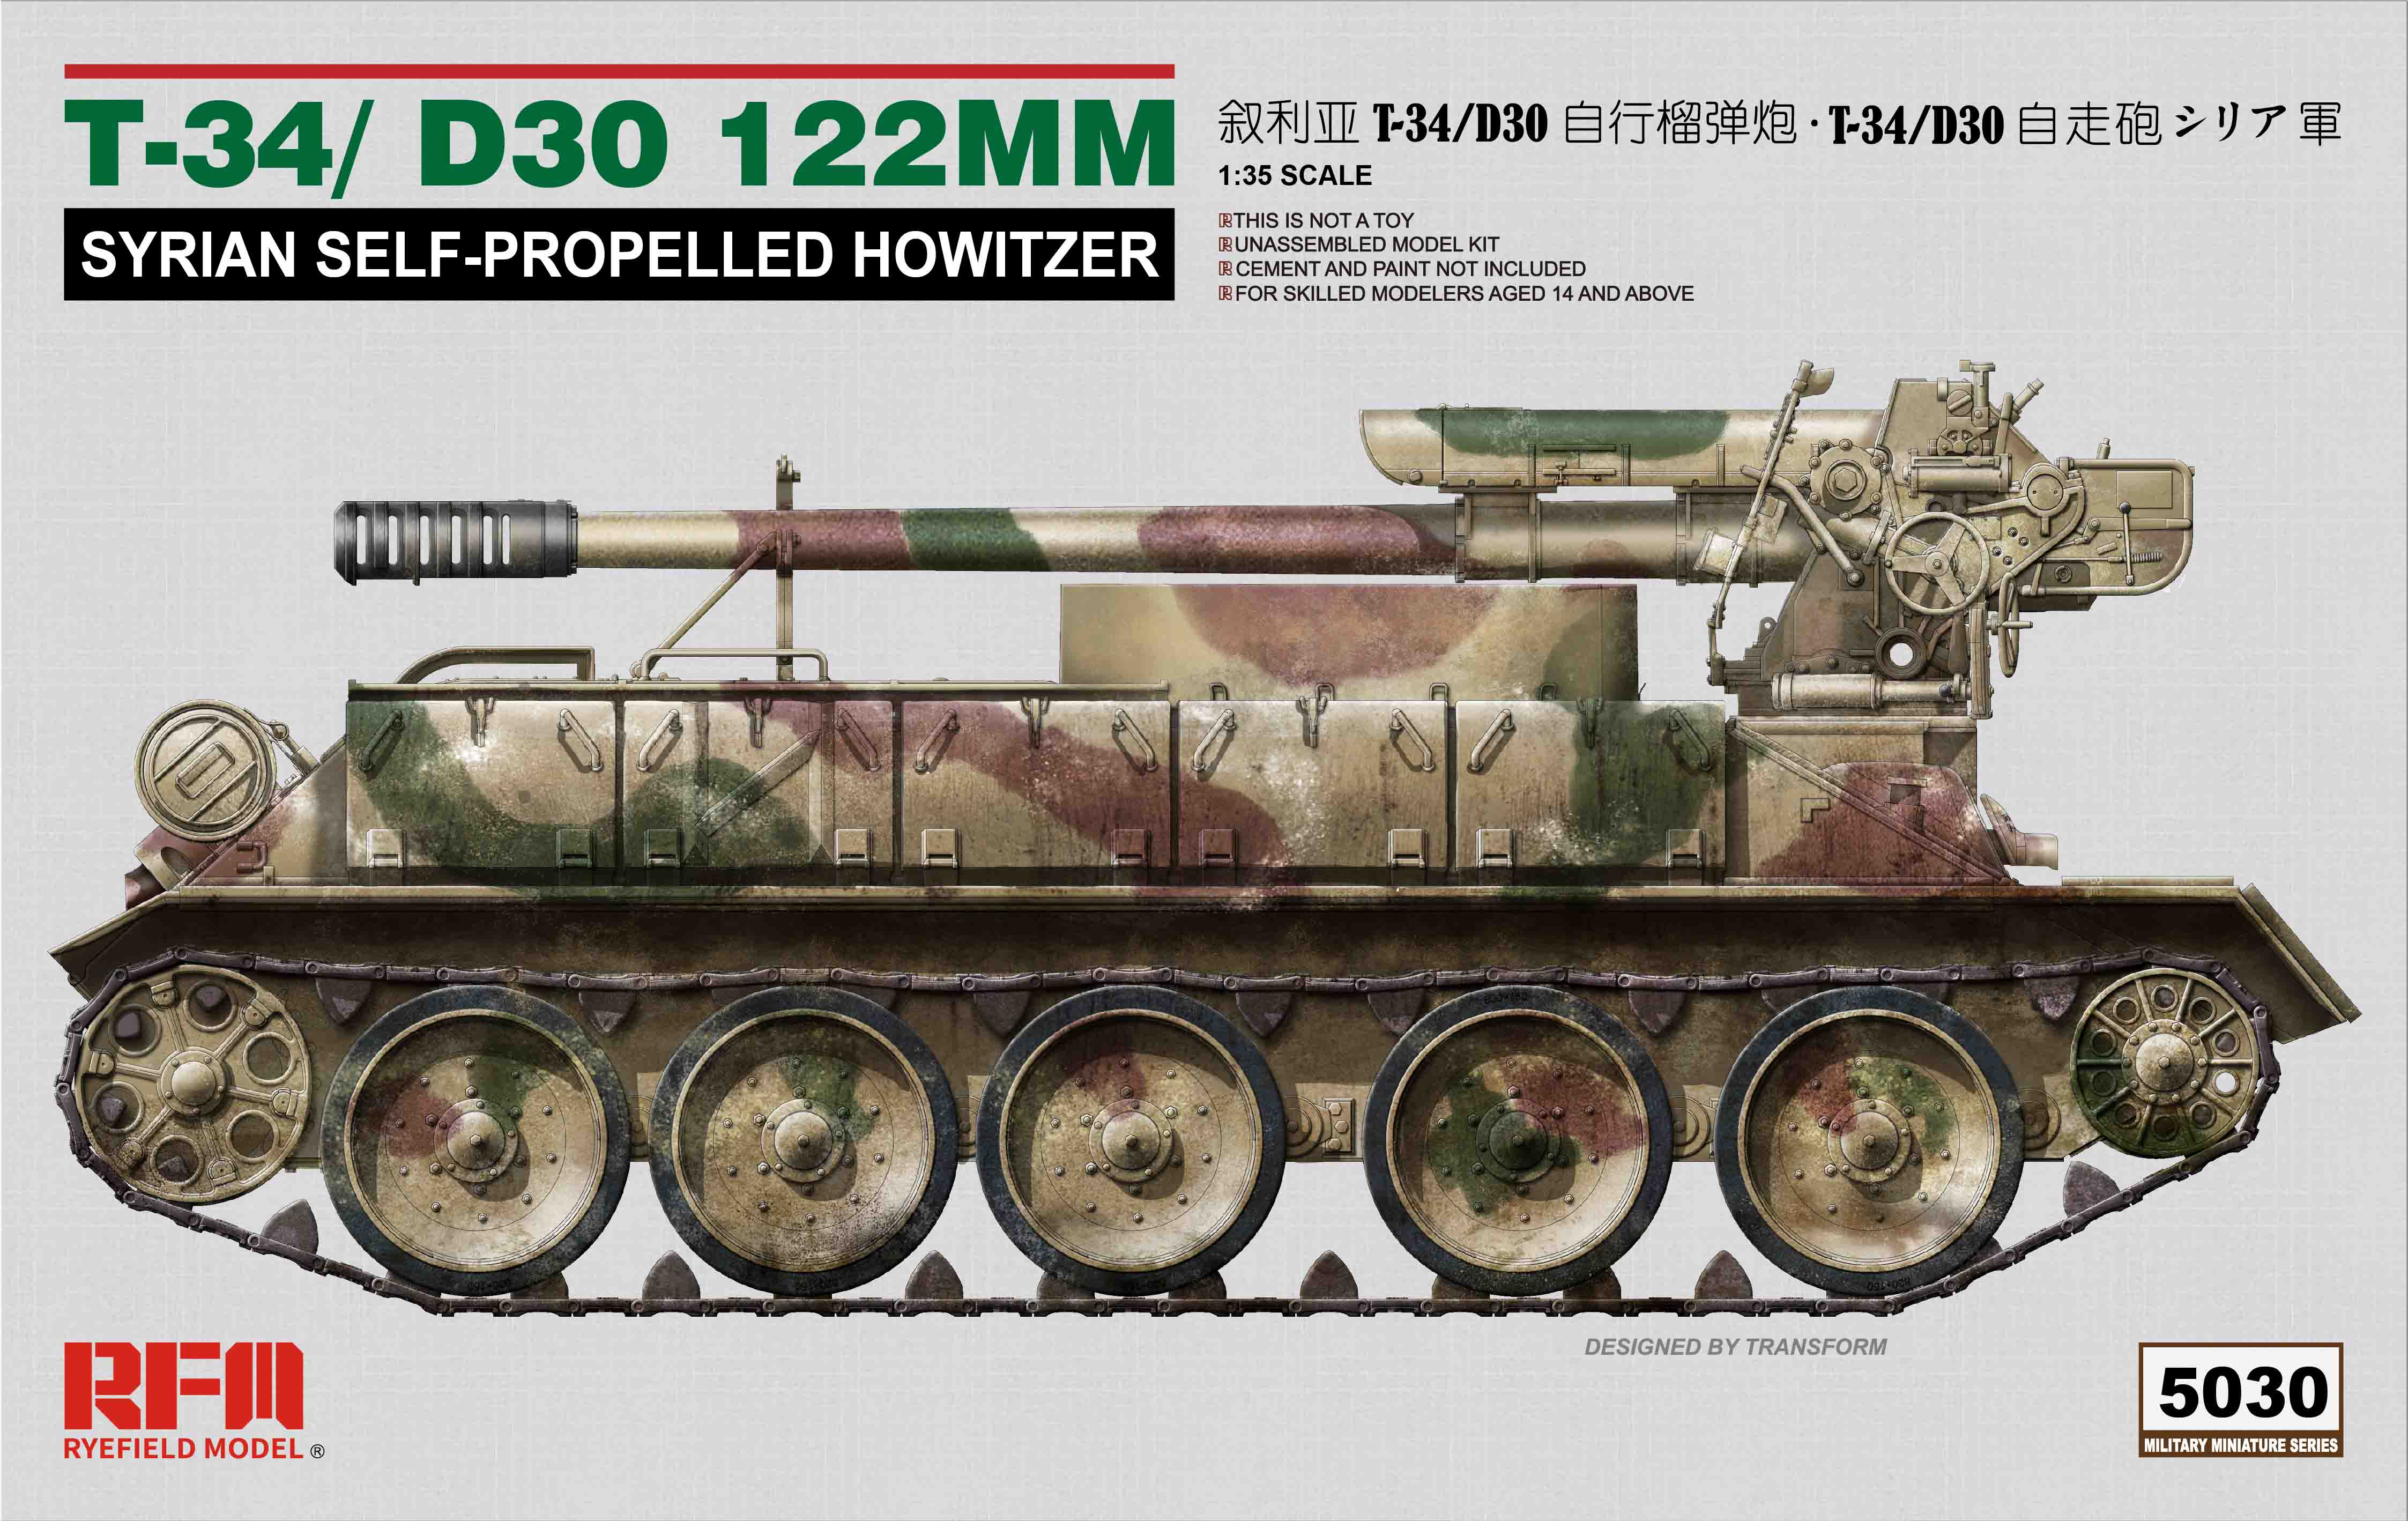 RM-5030  T34/D30 122MM SYRIAN SELF-PROPELLED HOWITZER